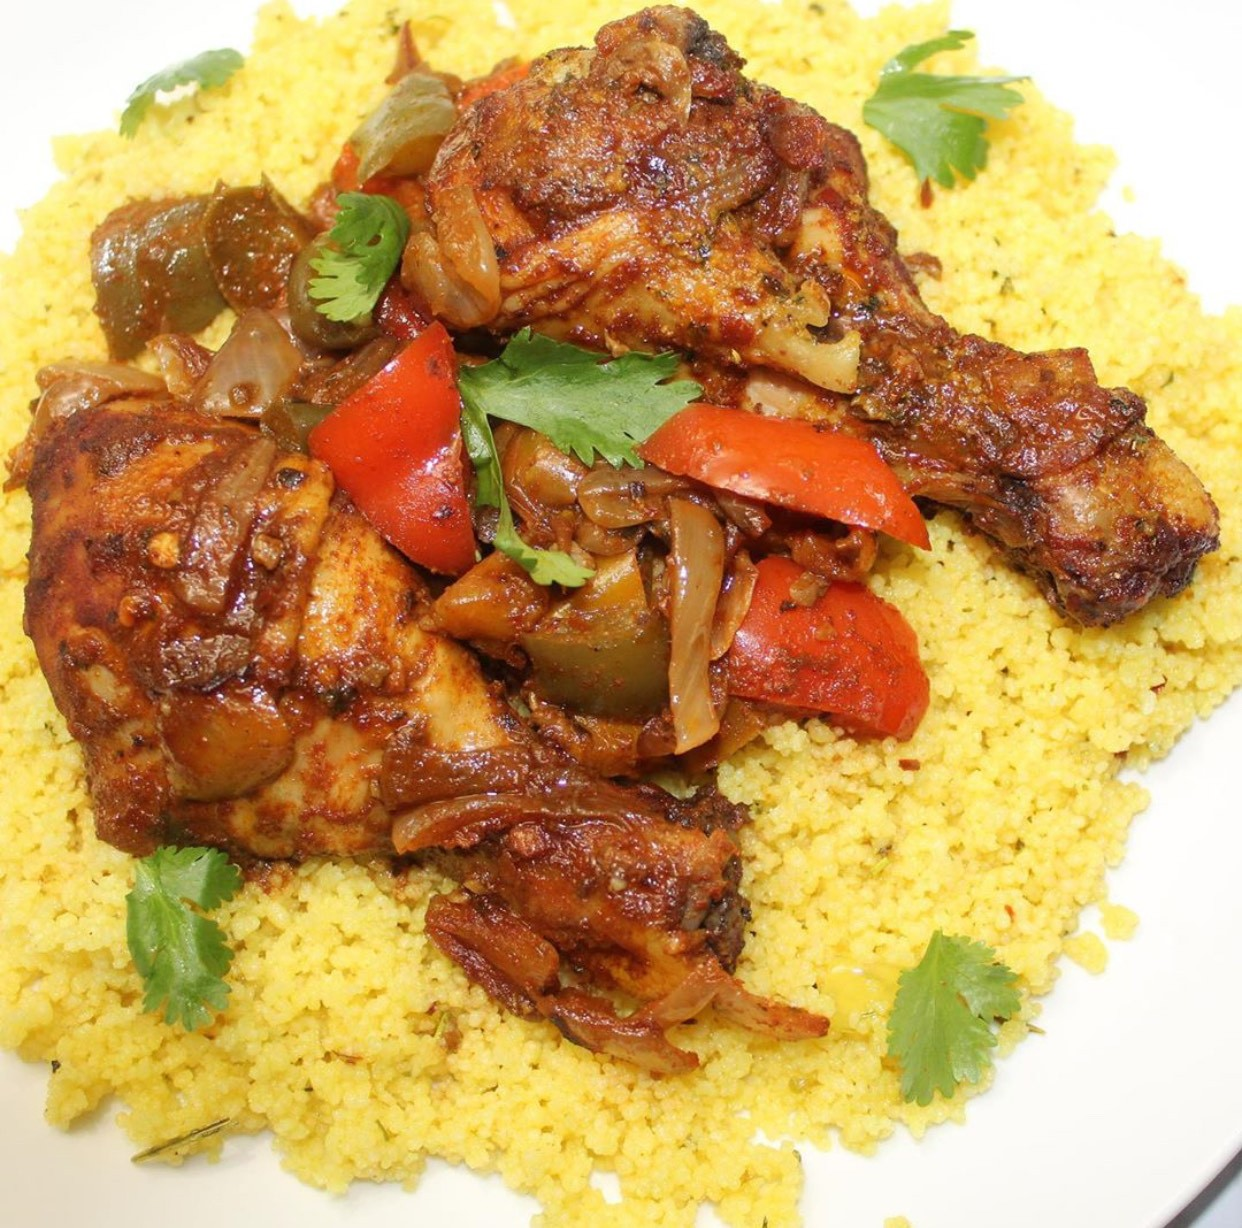 How to use Afromeals Harissa seasoning!